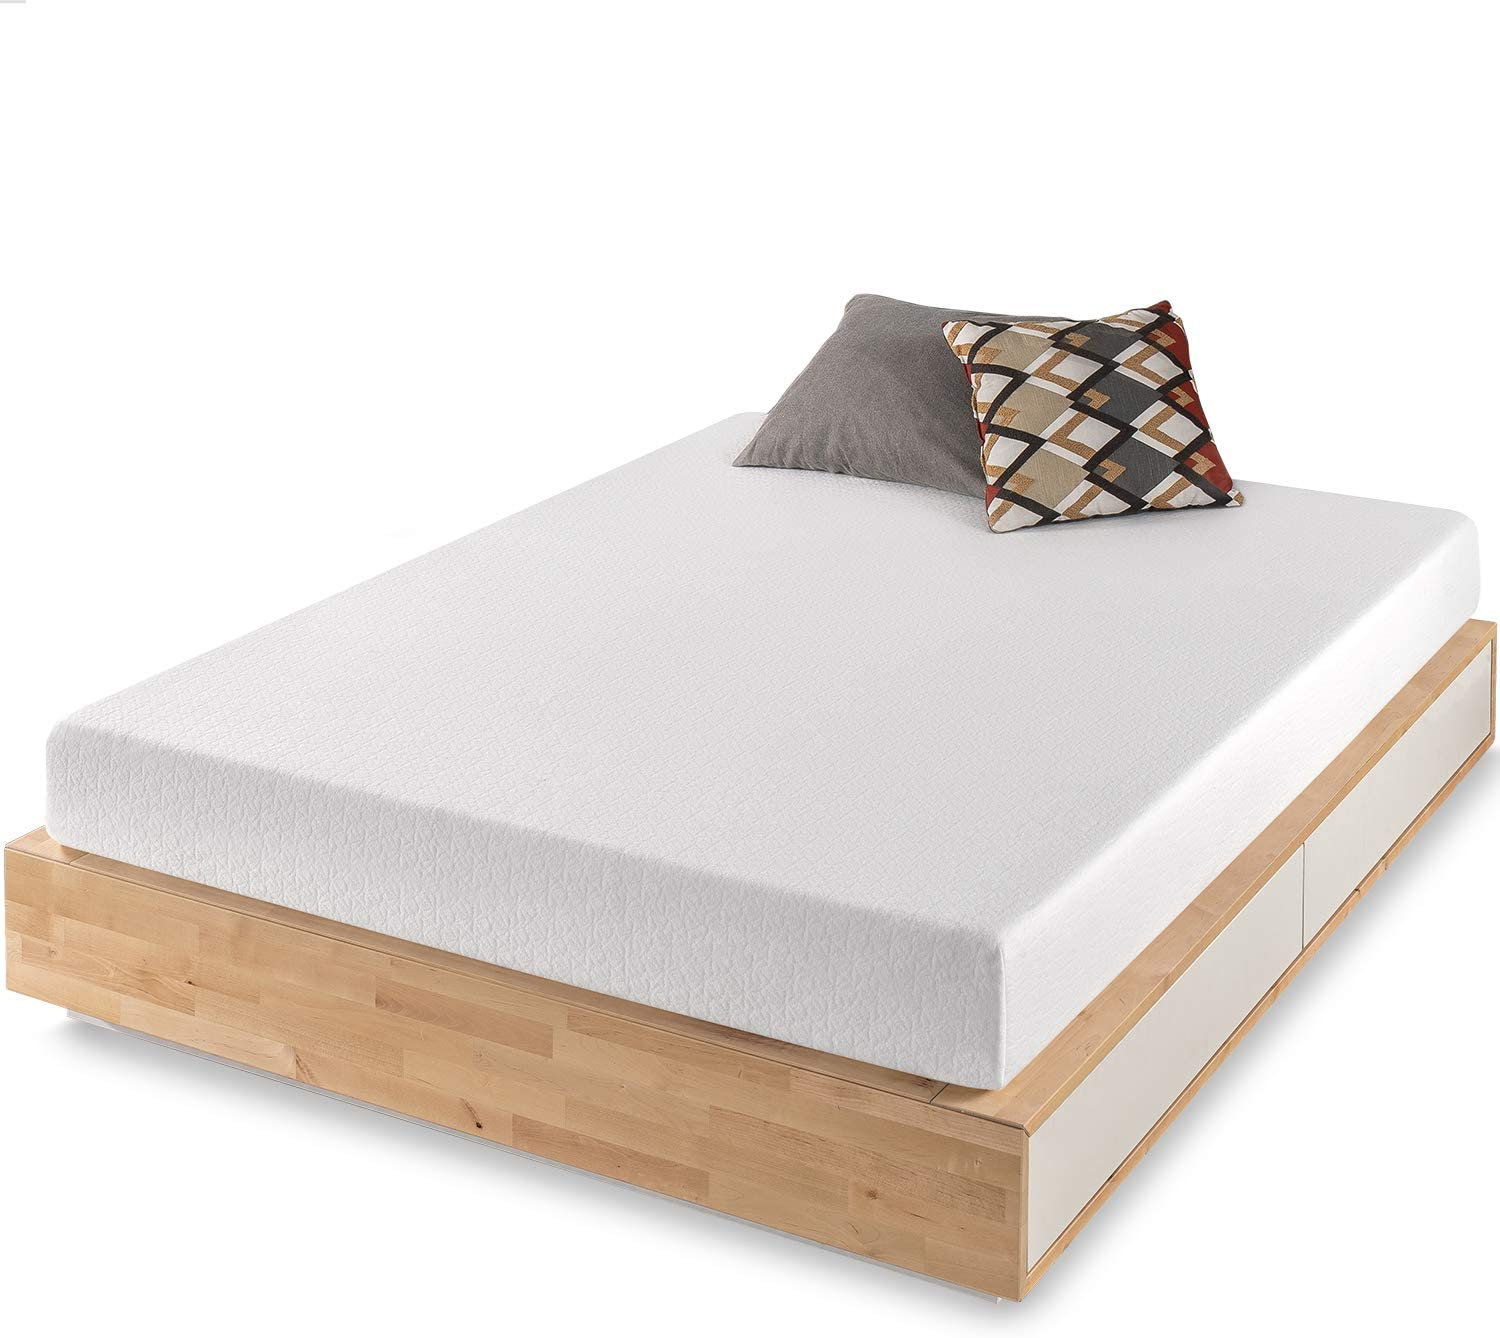 Best Price Mattress 8-Inch Memory Foam Mattress, Twin